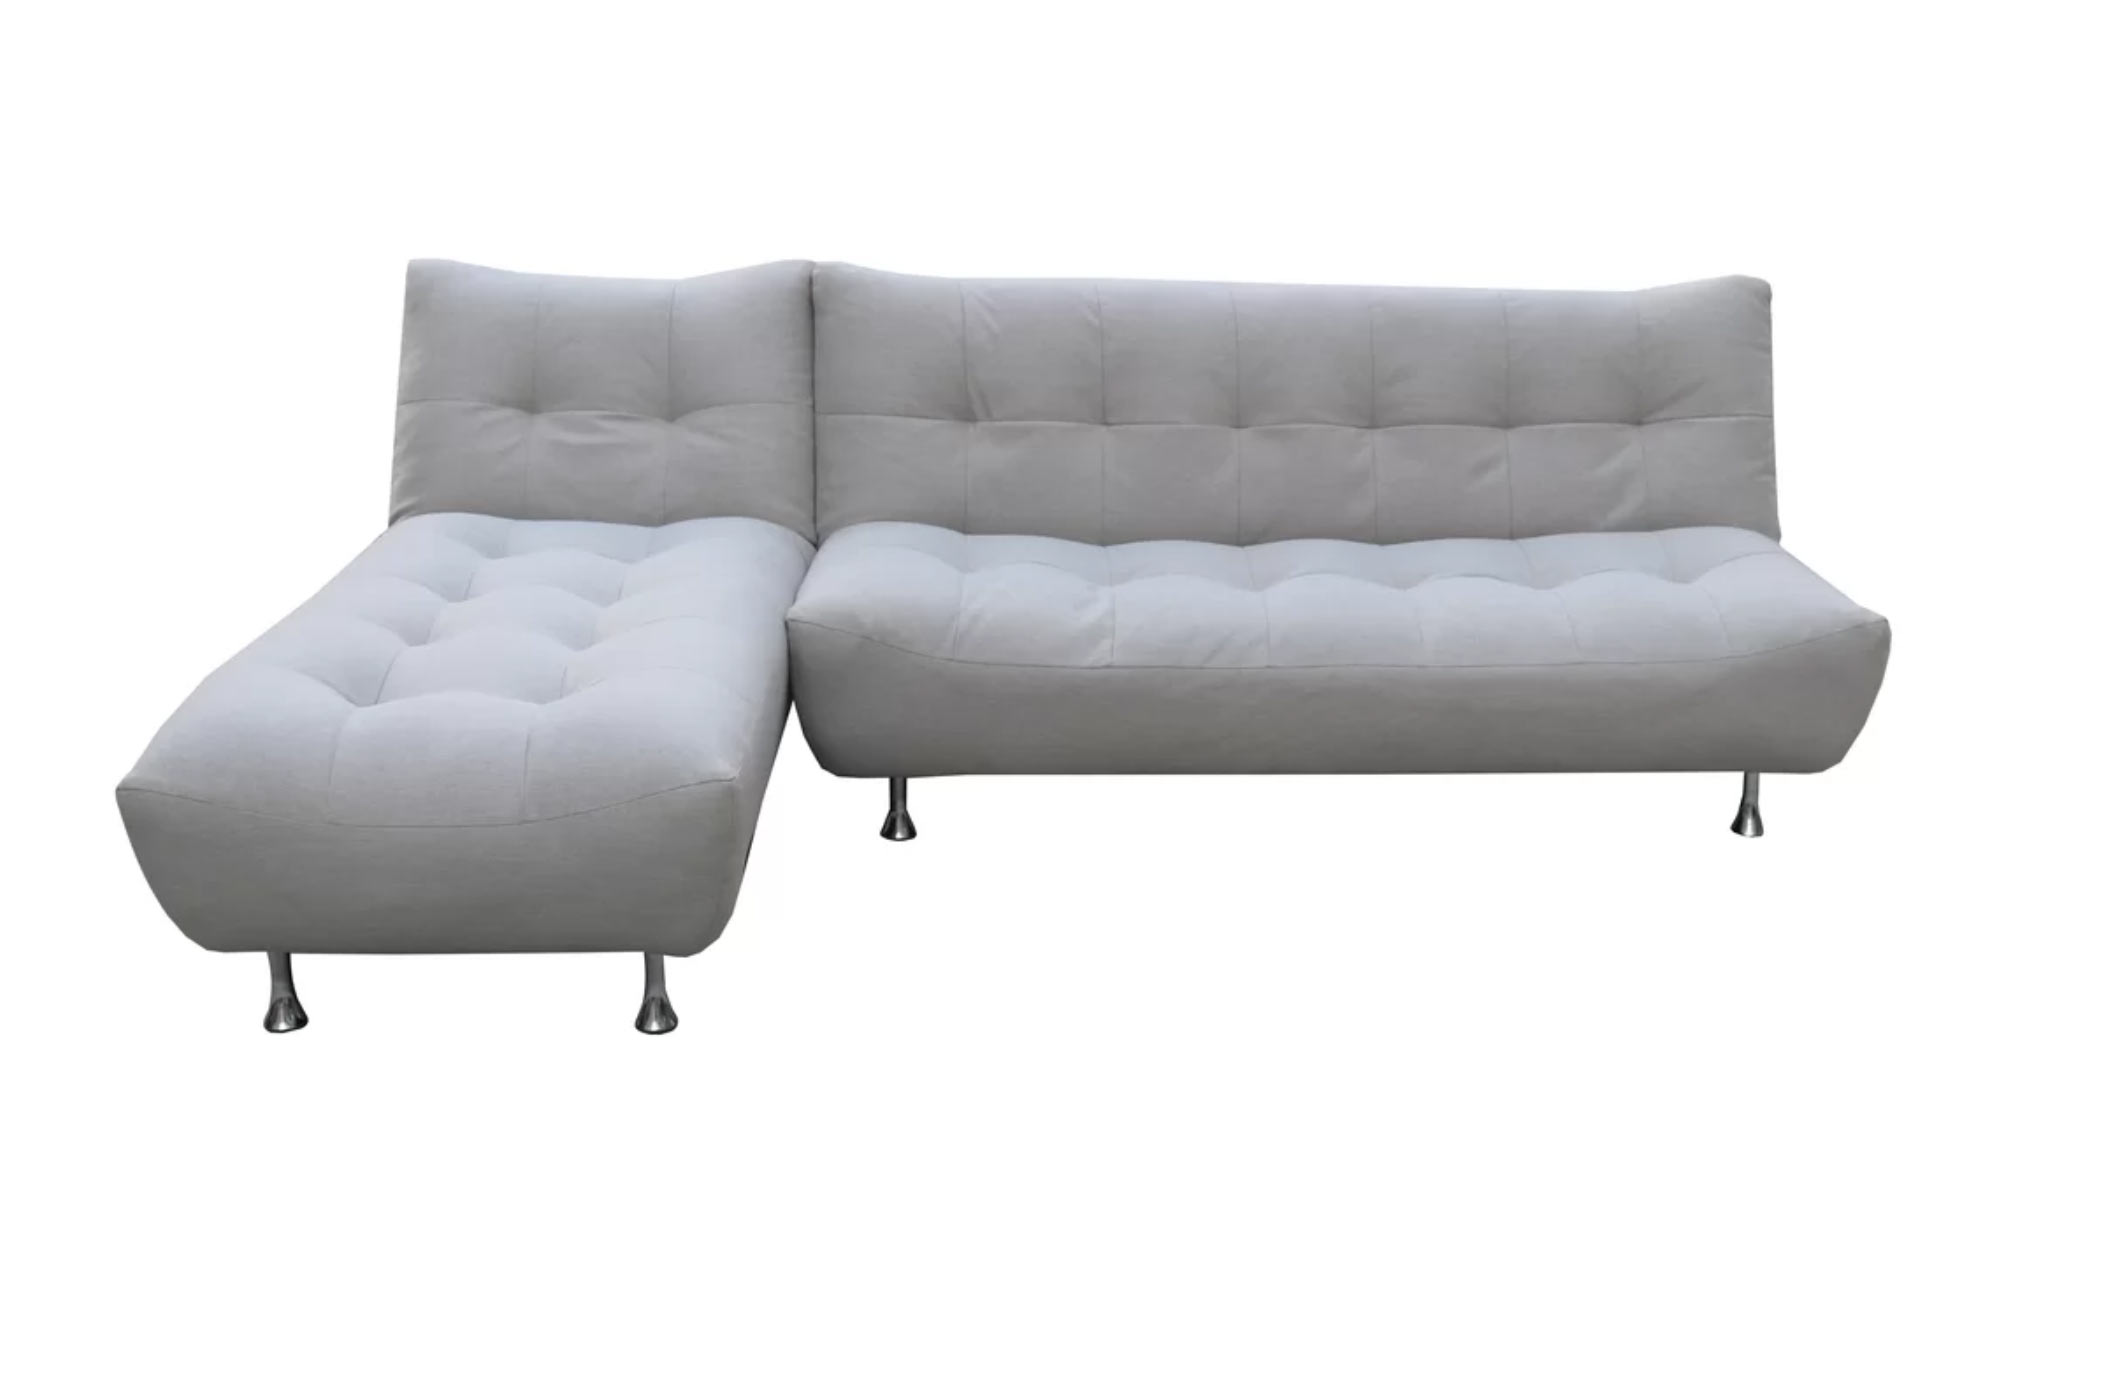 Furniture Chaise Cloud Sandstone Gray Sofa Bed W Optional Chaise By Night Day Furniture